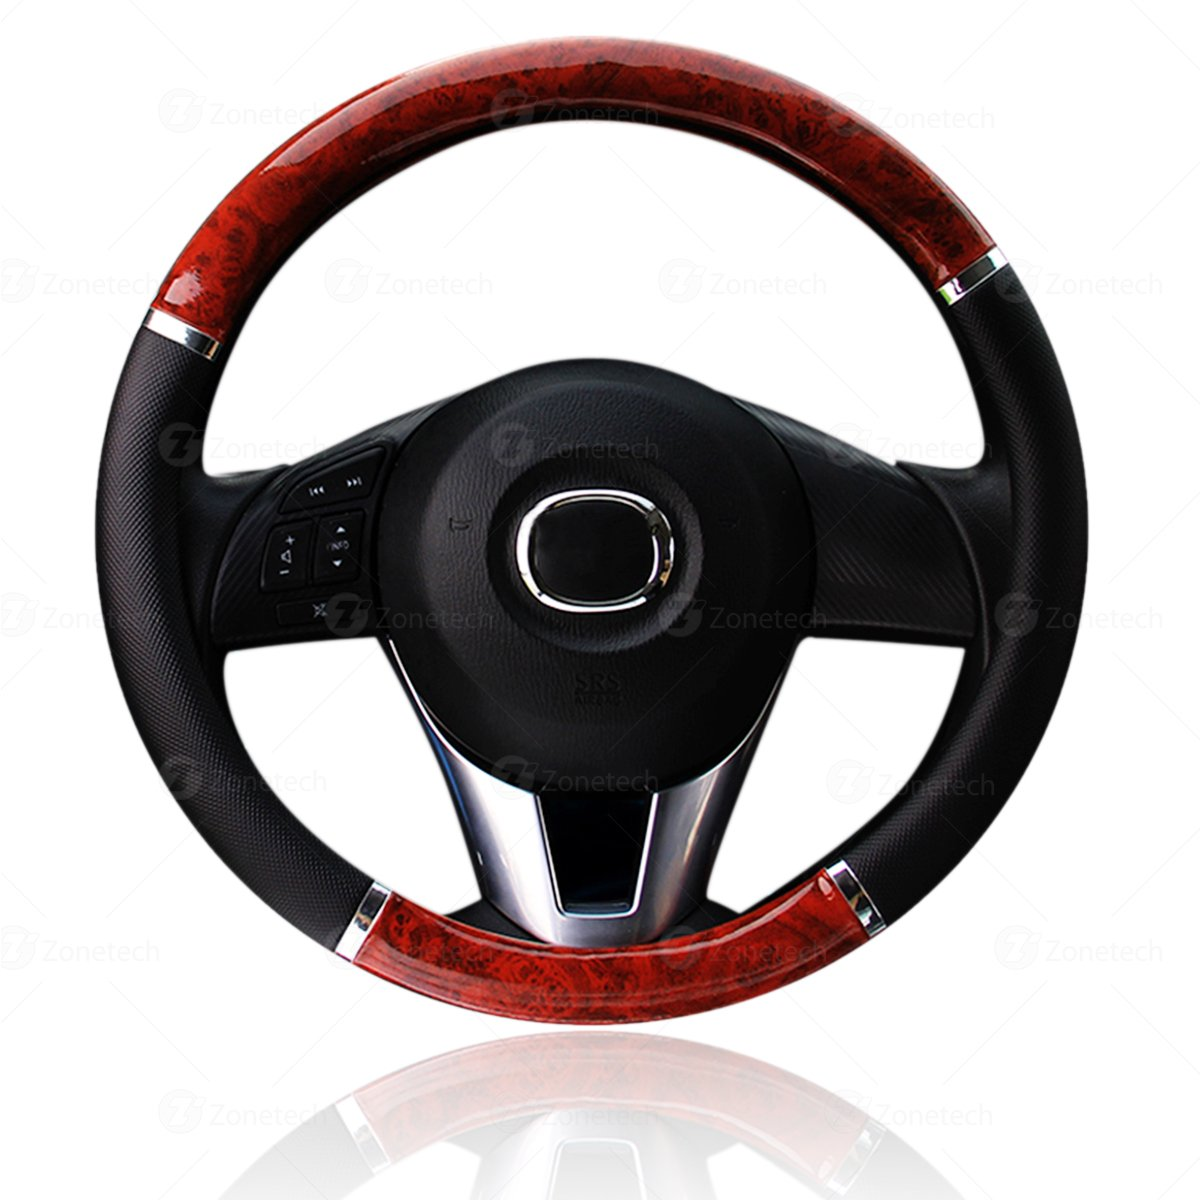 Zone Tech Steering Wheel Cover Black and Wood Premium Quality Classic Black with Wood Grain Style Cover Perfect for all Standard Size Auto Steering Wheel